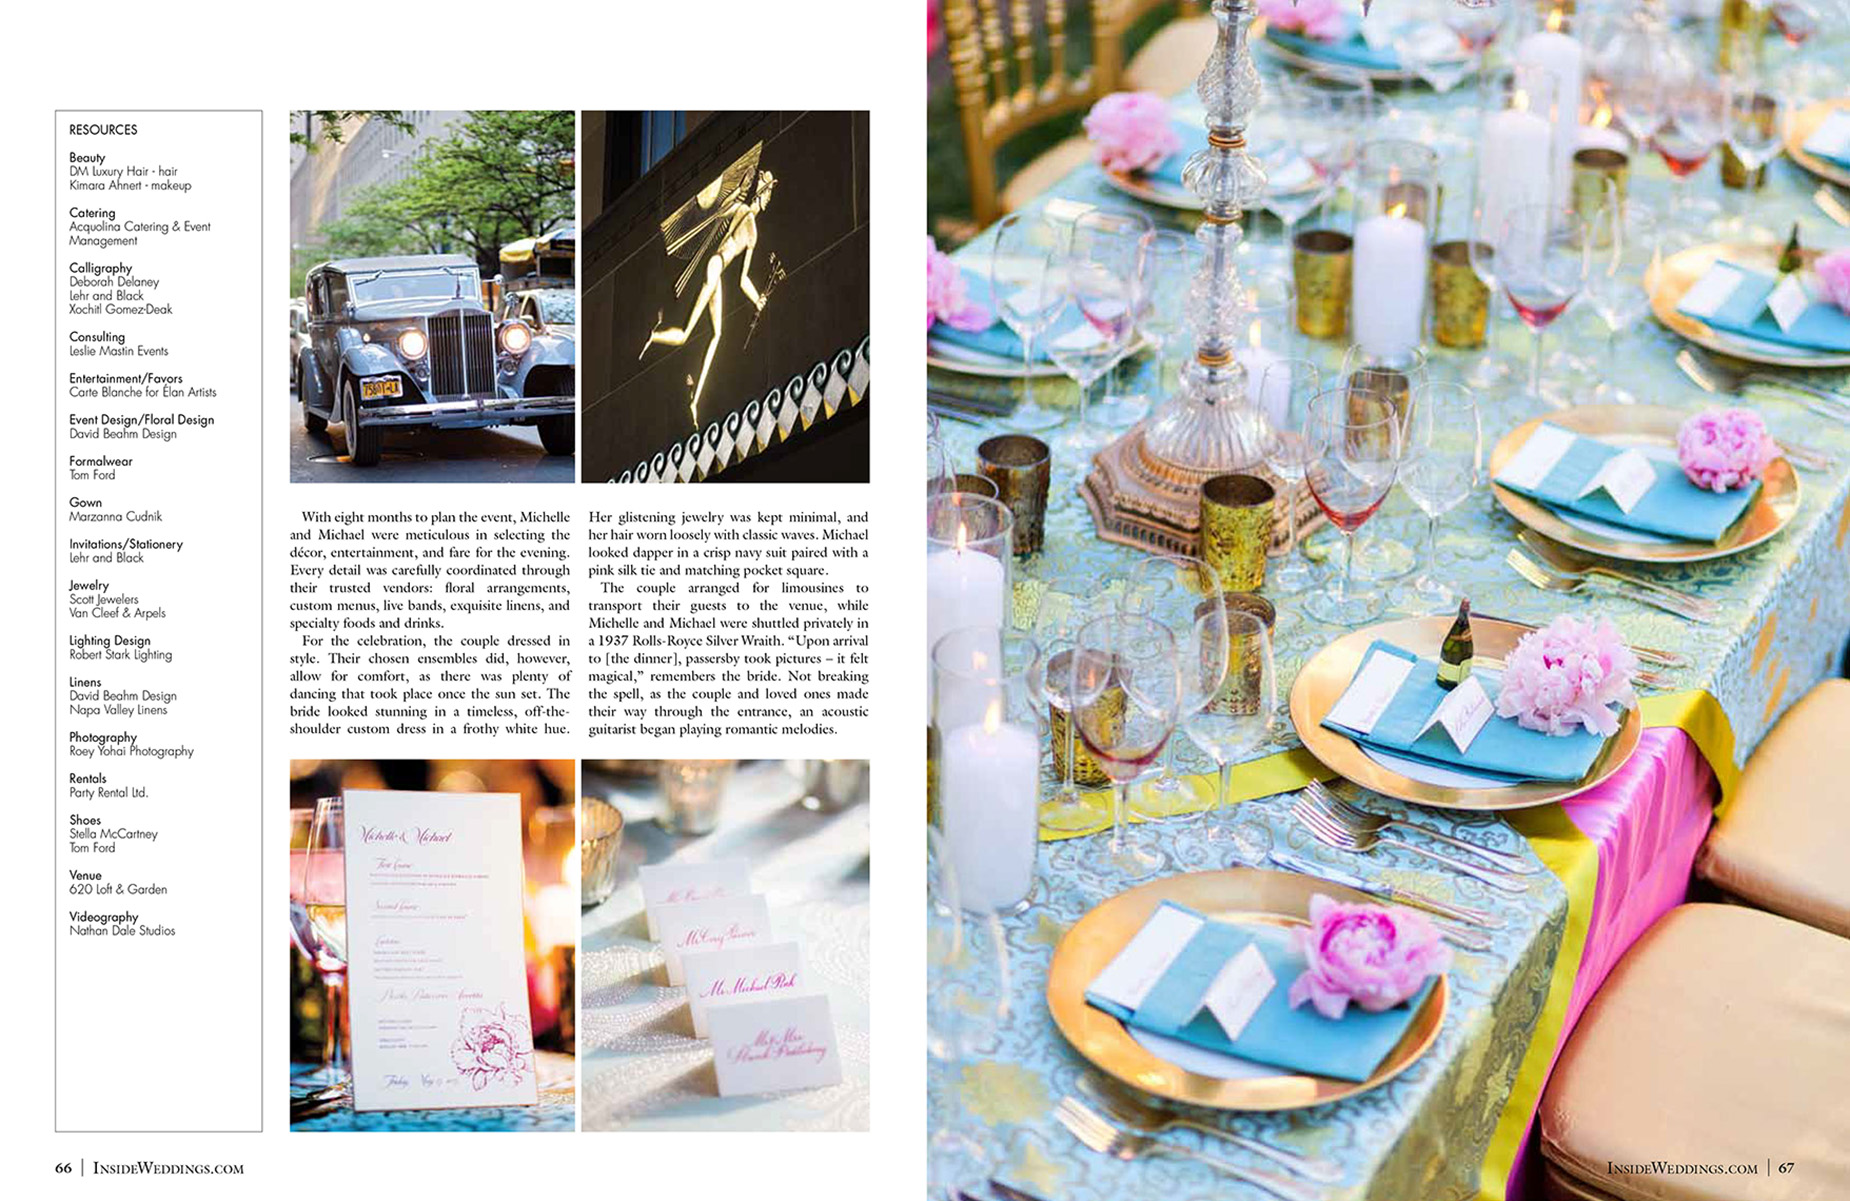 117_InsideWeddings_spread2_summer2014